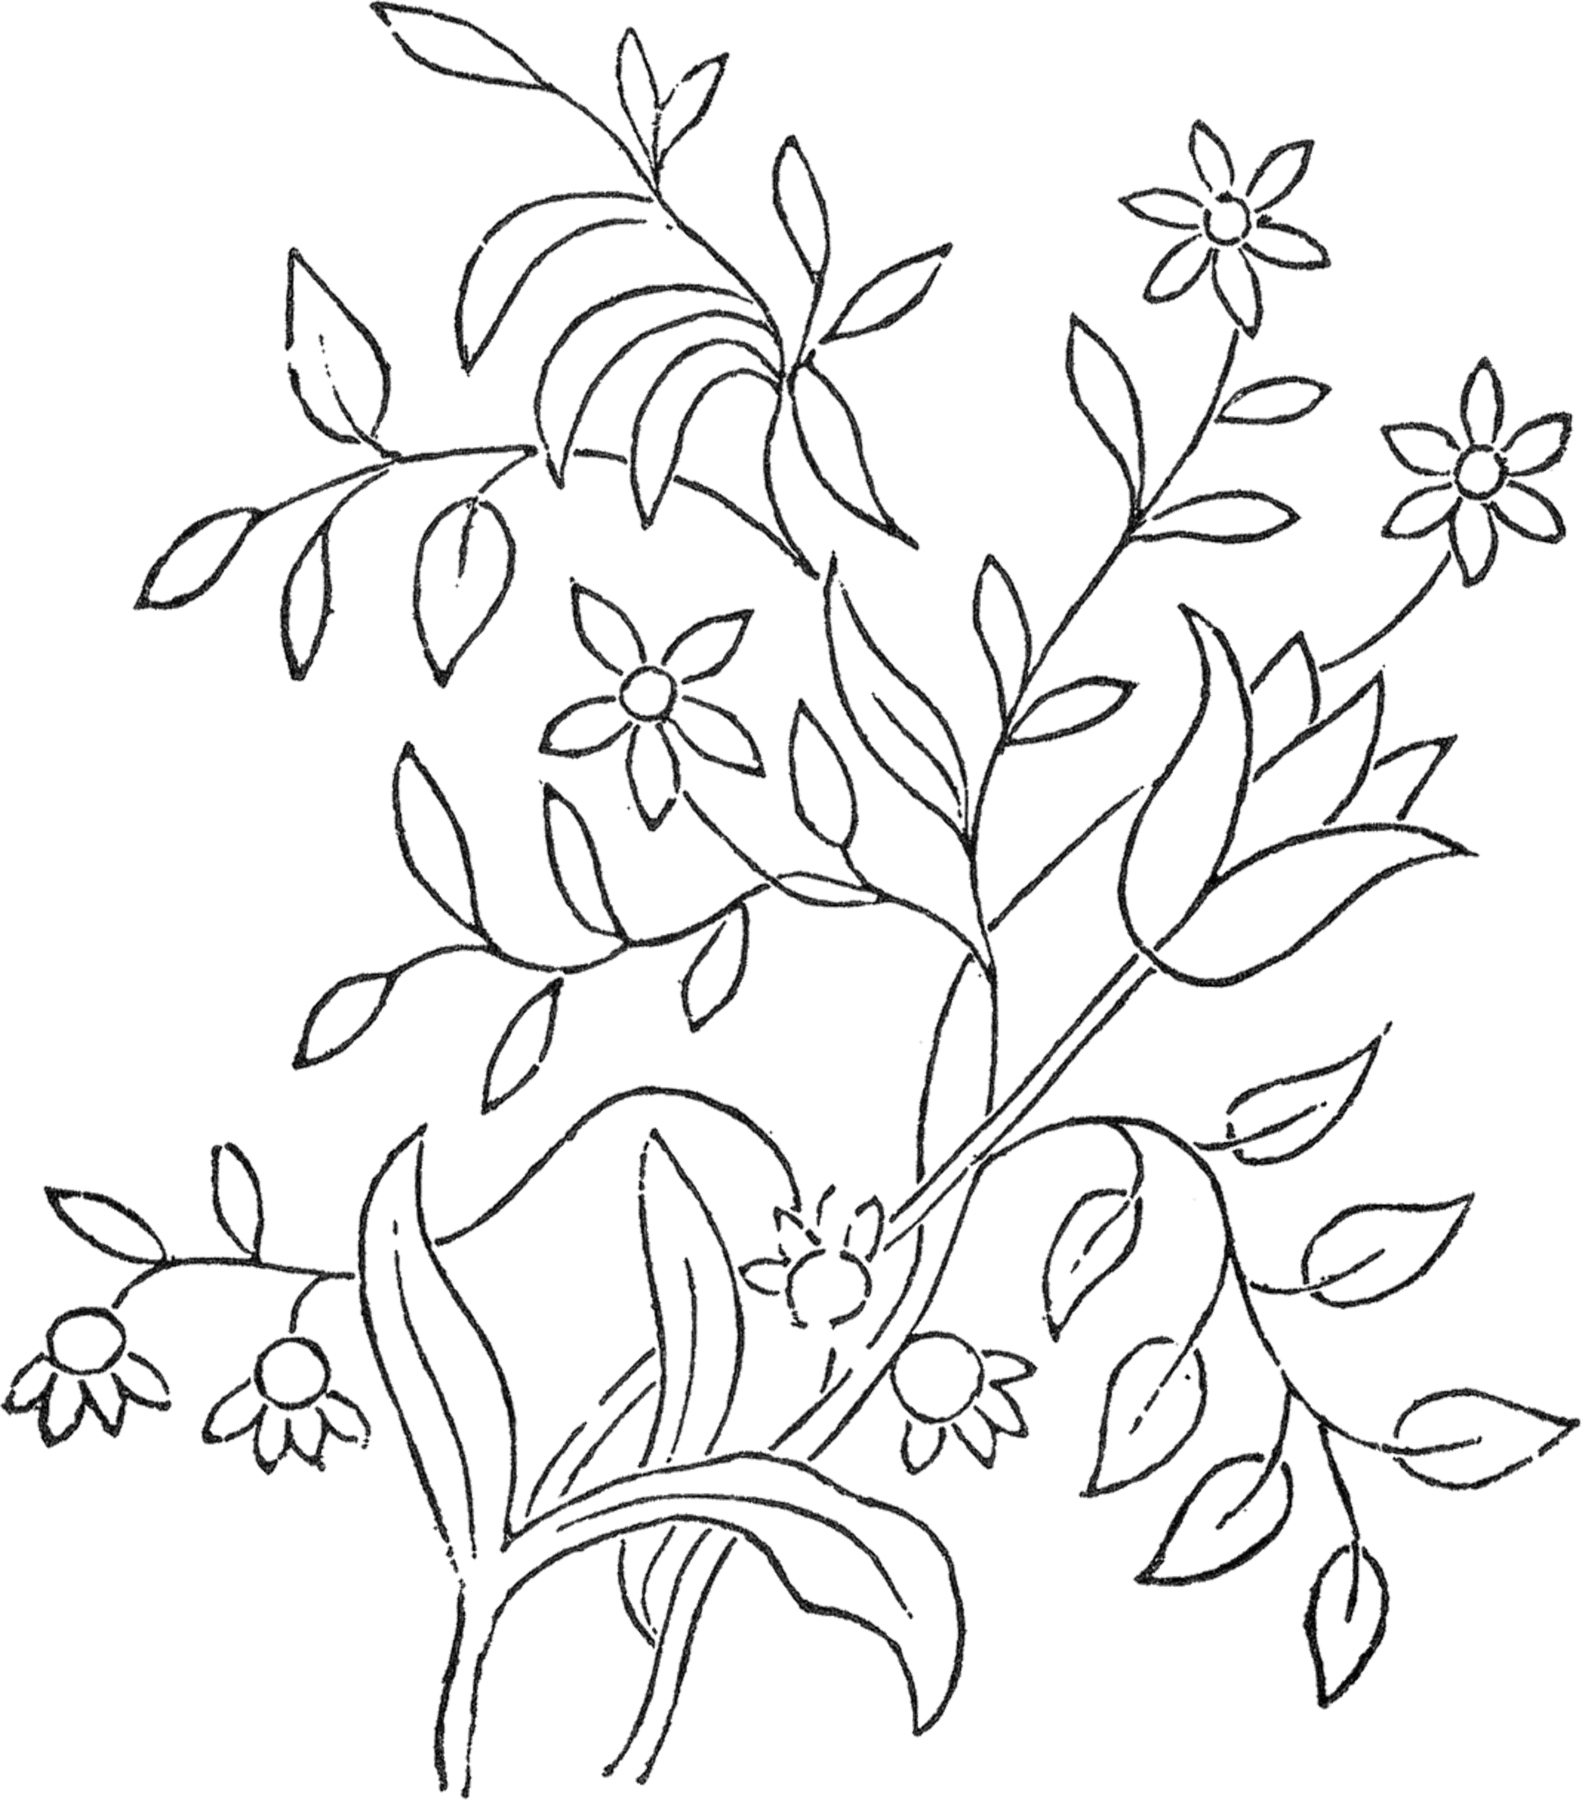 Line Drawing Embroidery : Flower embroidery pattern the graphics fairy